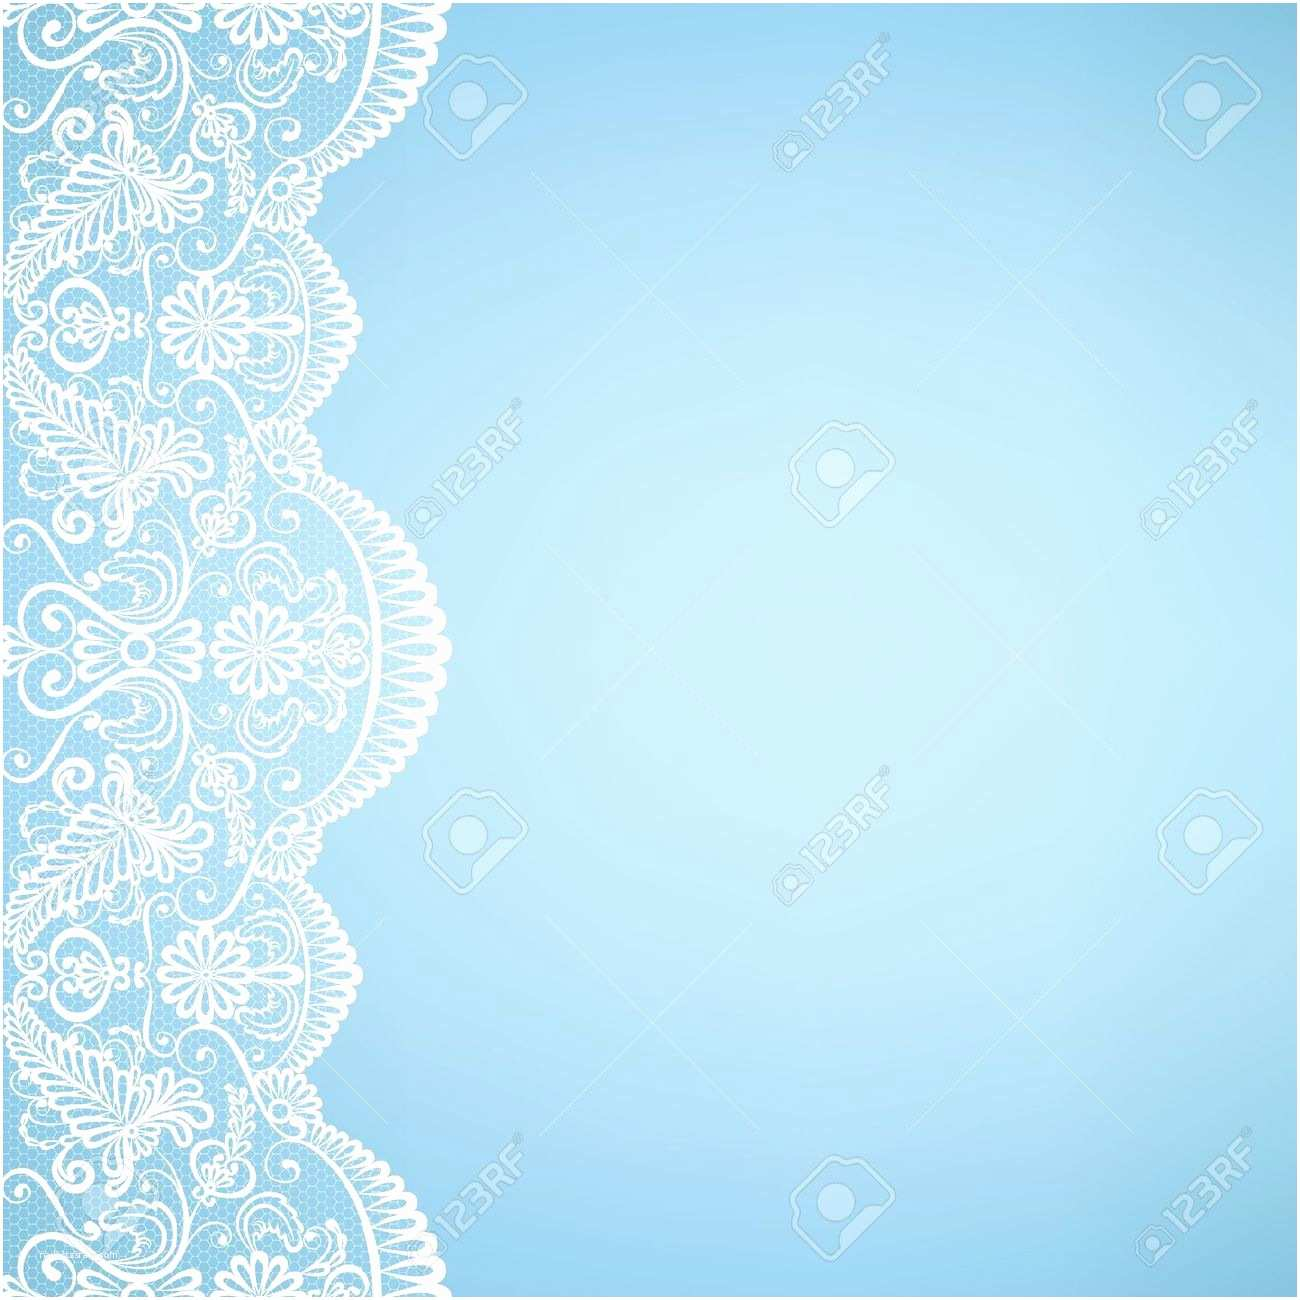 Background Designs for Wedding Invitations Free Background for Invitations Cloudinvitation